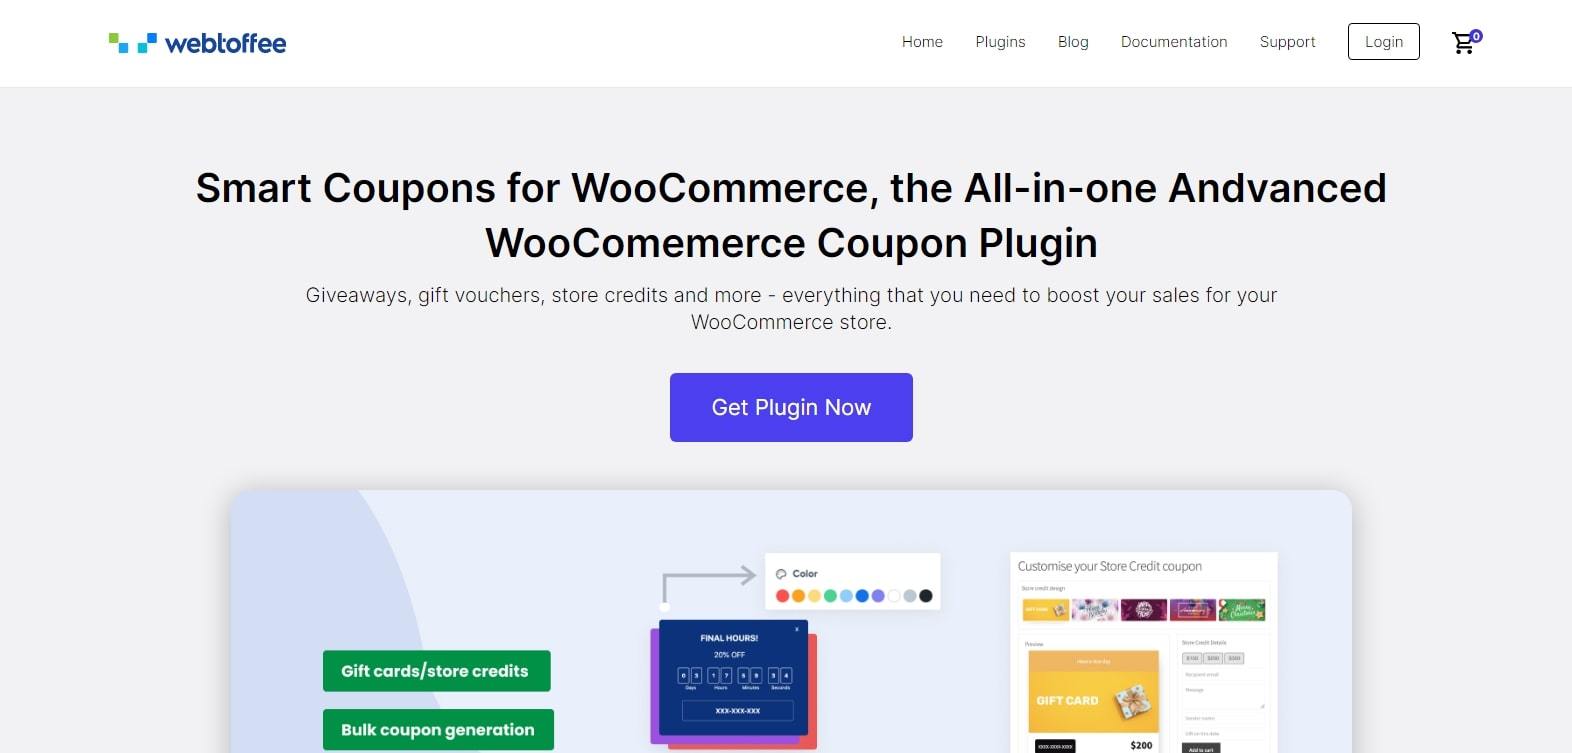 WebToffee Smart Coupons for WooCommerce